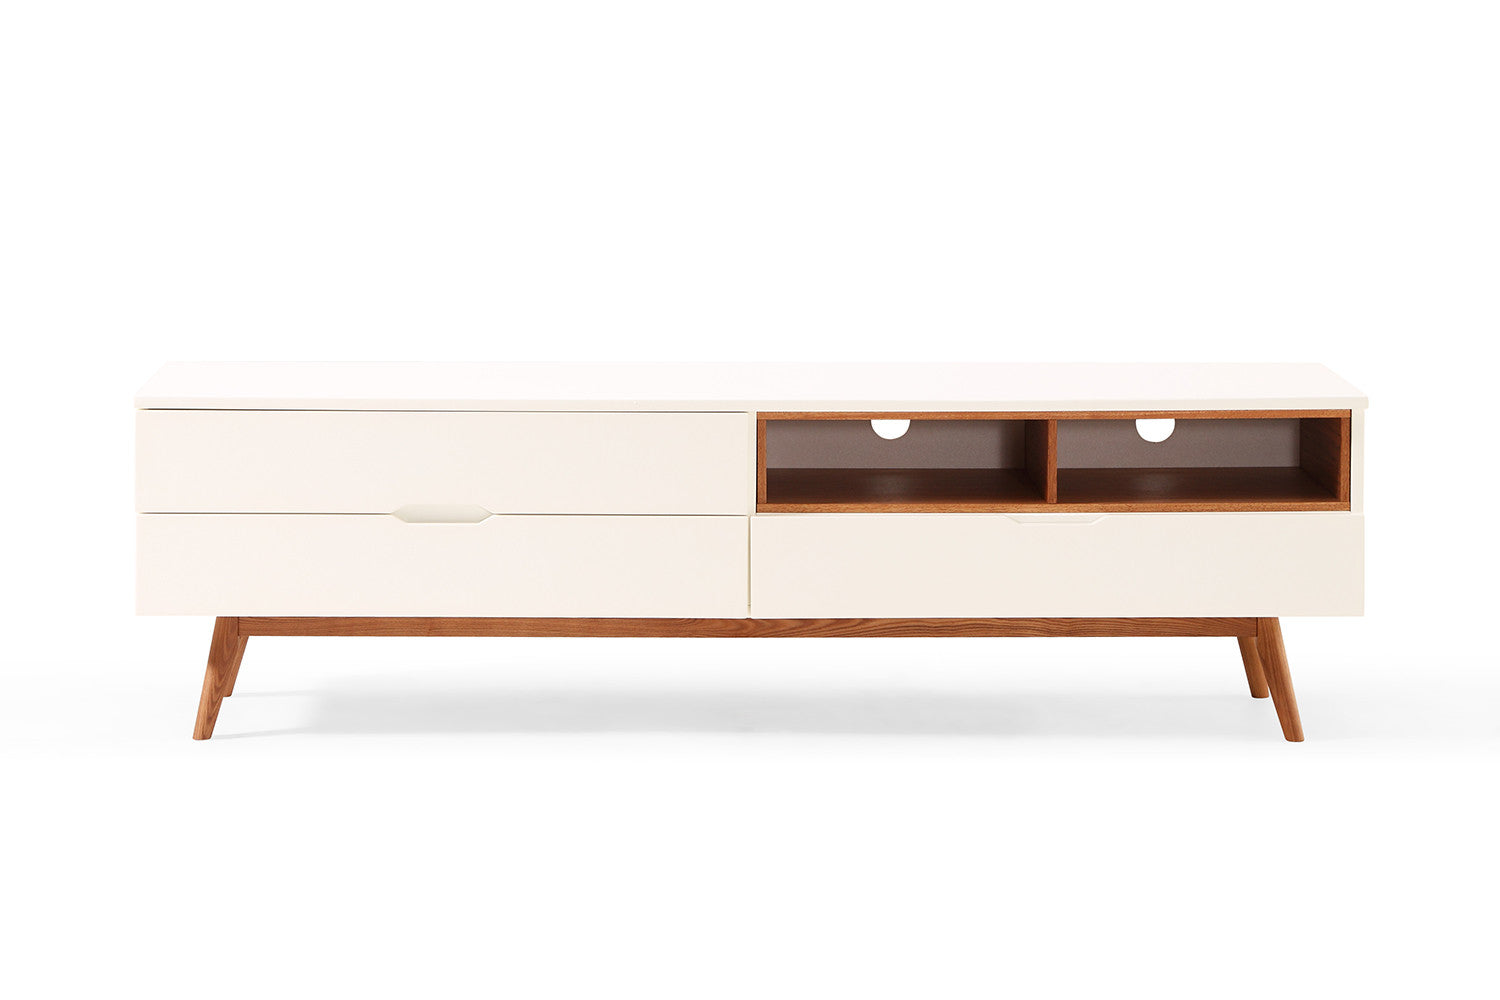 Meuble tv design scandinave lema dewarens - Meuble suedois design ...